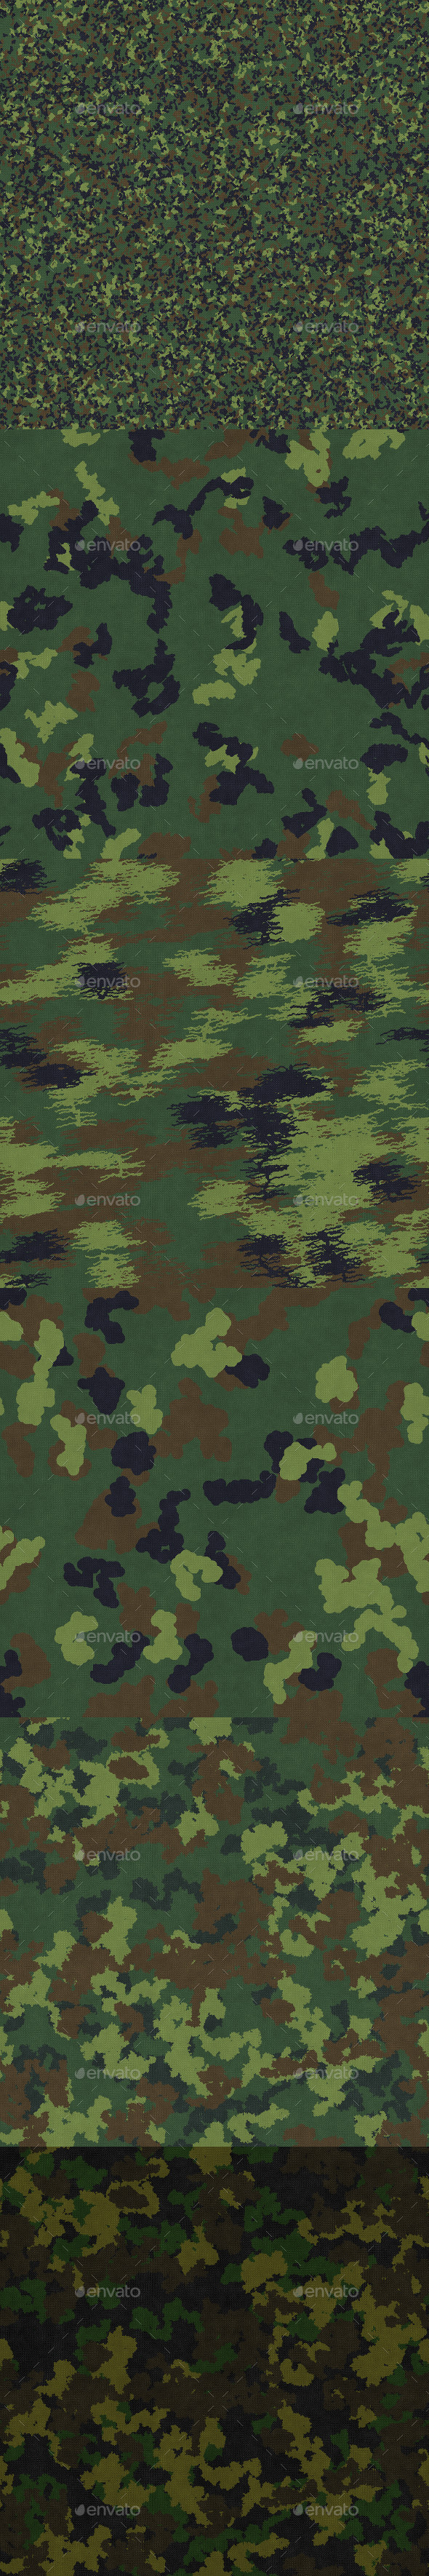 Camouflage textures - 3DOcean Item for Sale